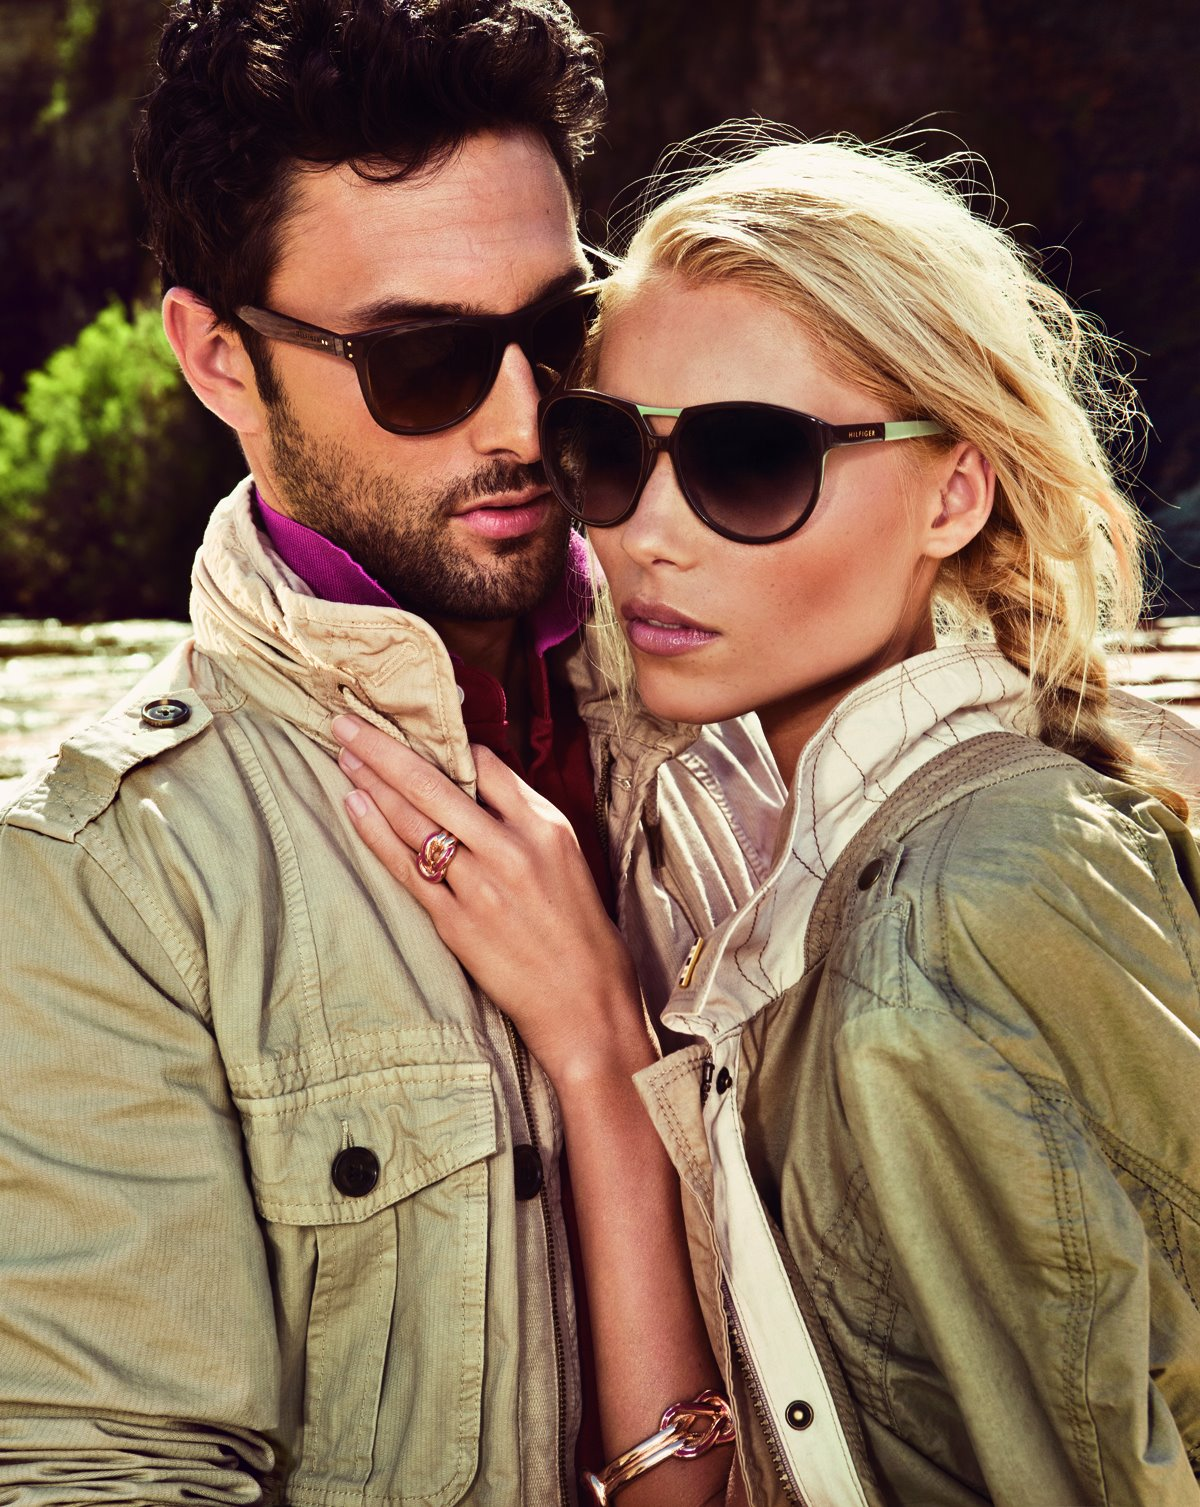 Noah Mills Wears Casual Shades for Tommy Hilfiger's Spring/Summer 2012 Sunglasses Campaign